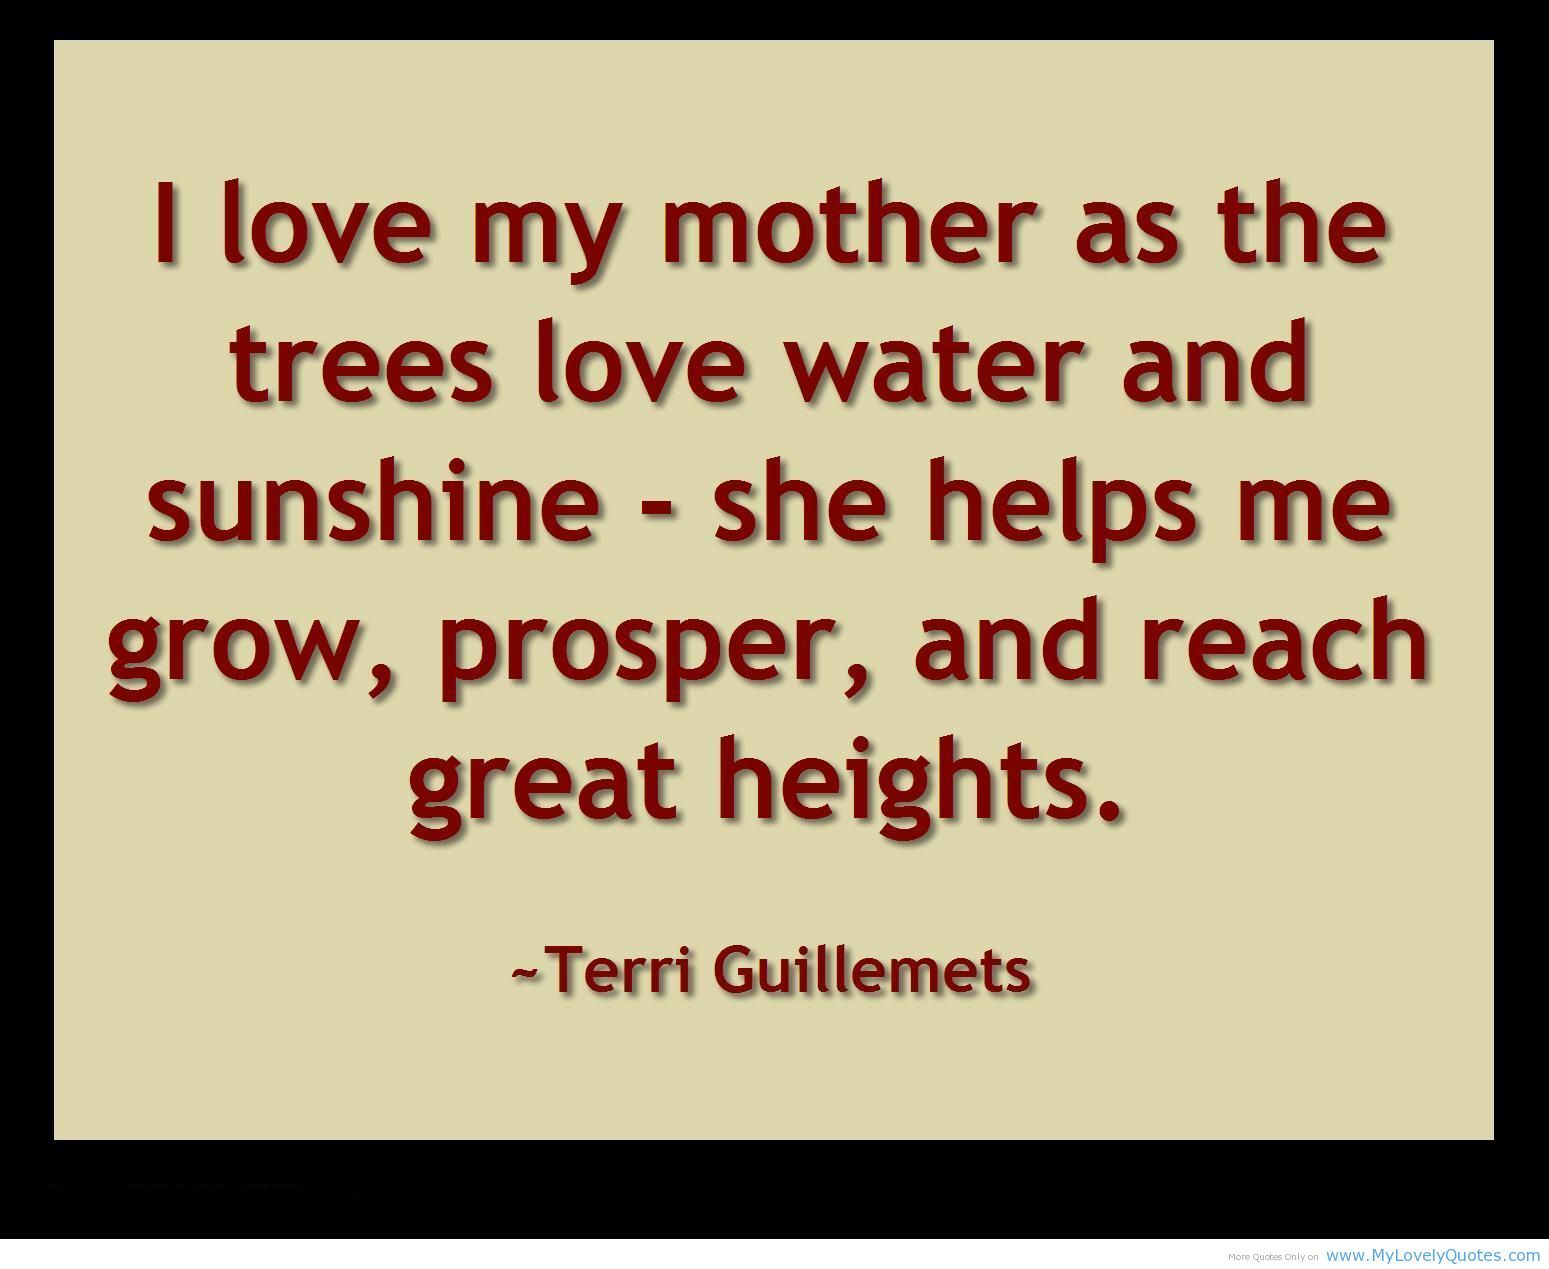 Quotes about mothers love maternityquotes http:\/\/www